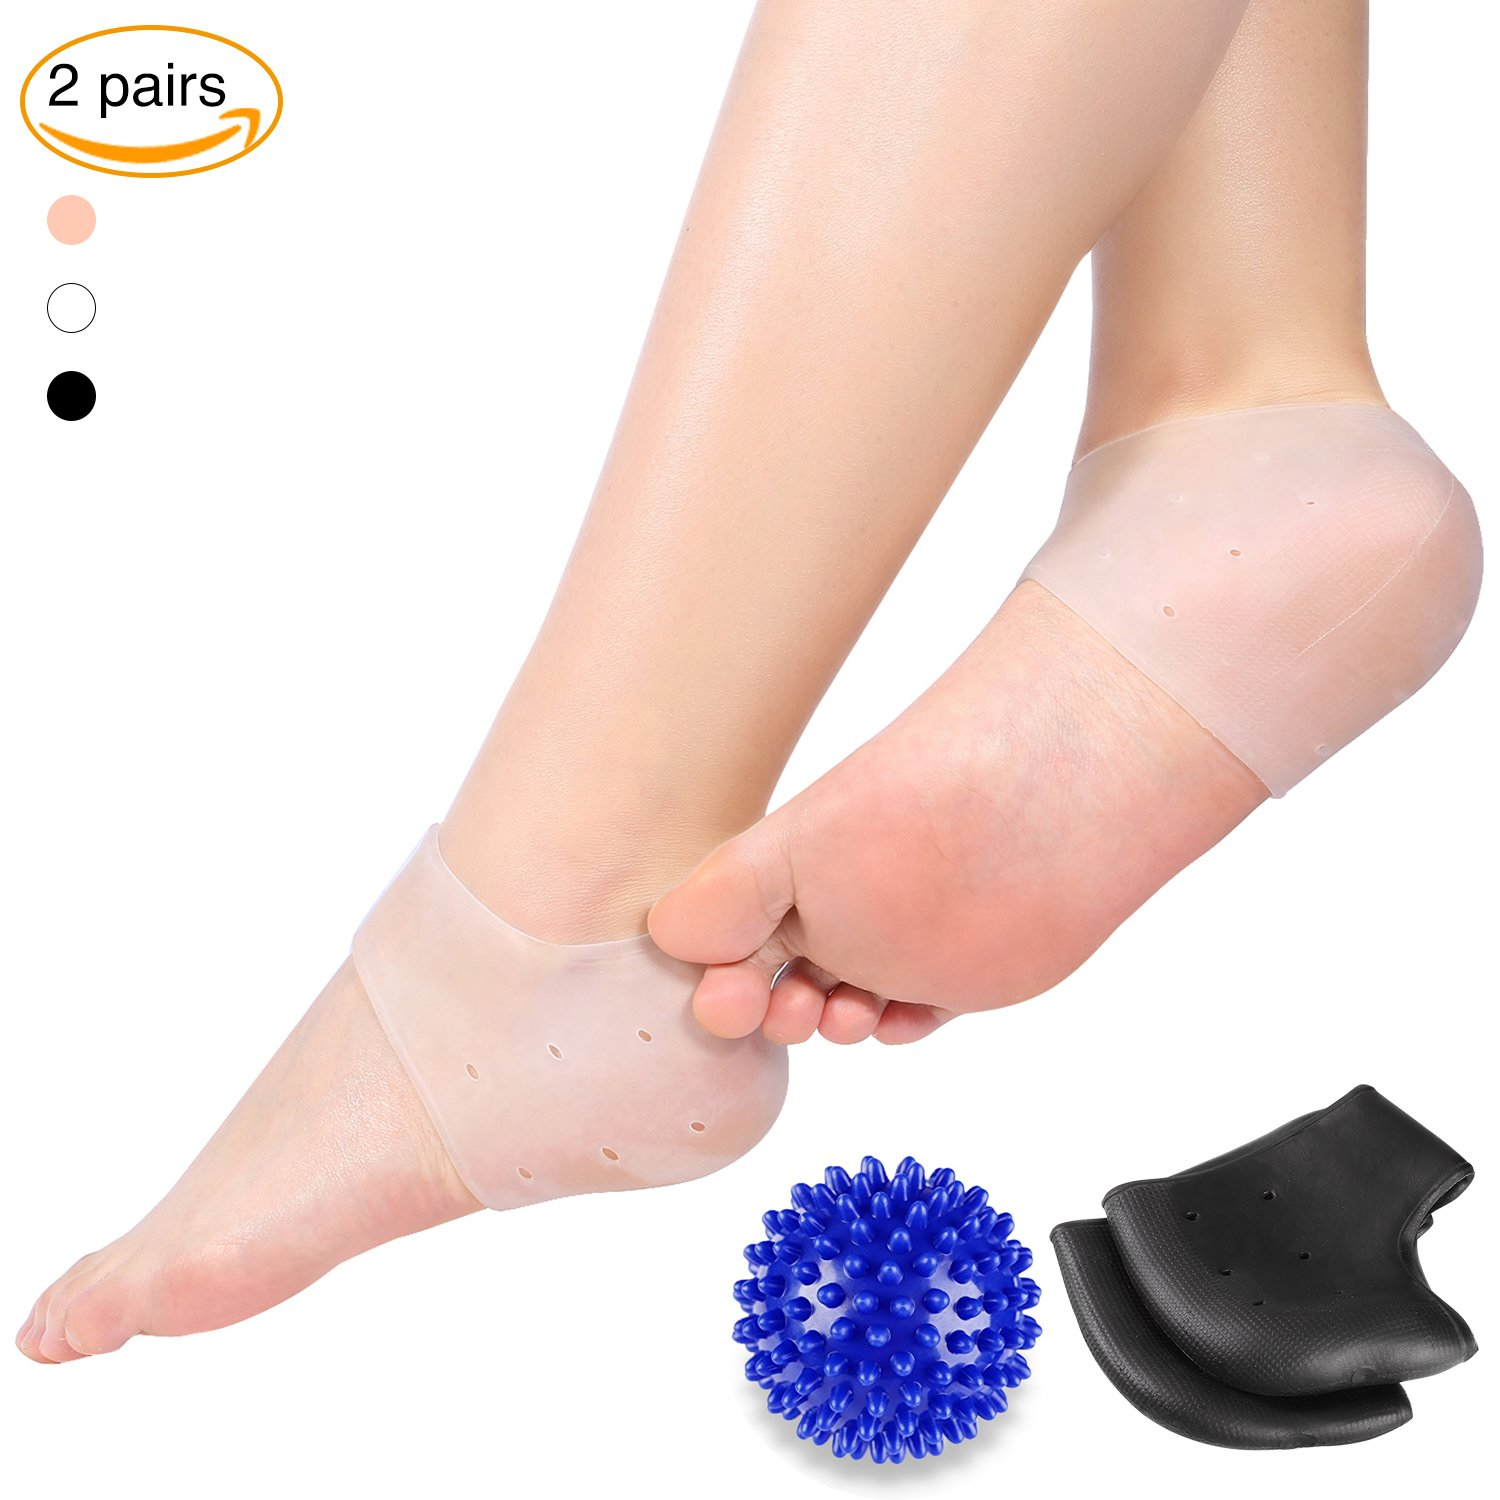 2 Pairs Moisturizing Silicone Gel Heel Socks Foot Care with Massage Ball, Plantar Fasciitis Pain Relief Pads Yosoo®